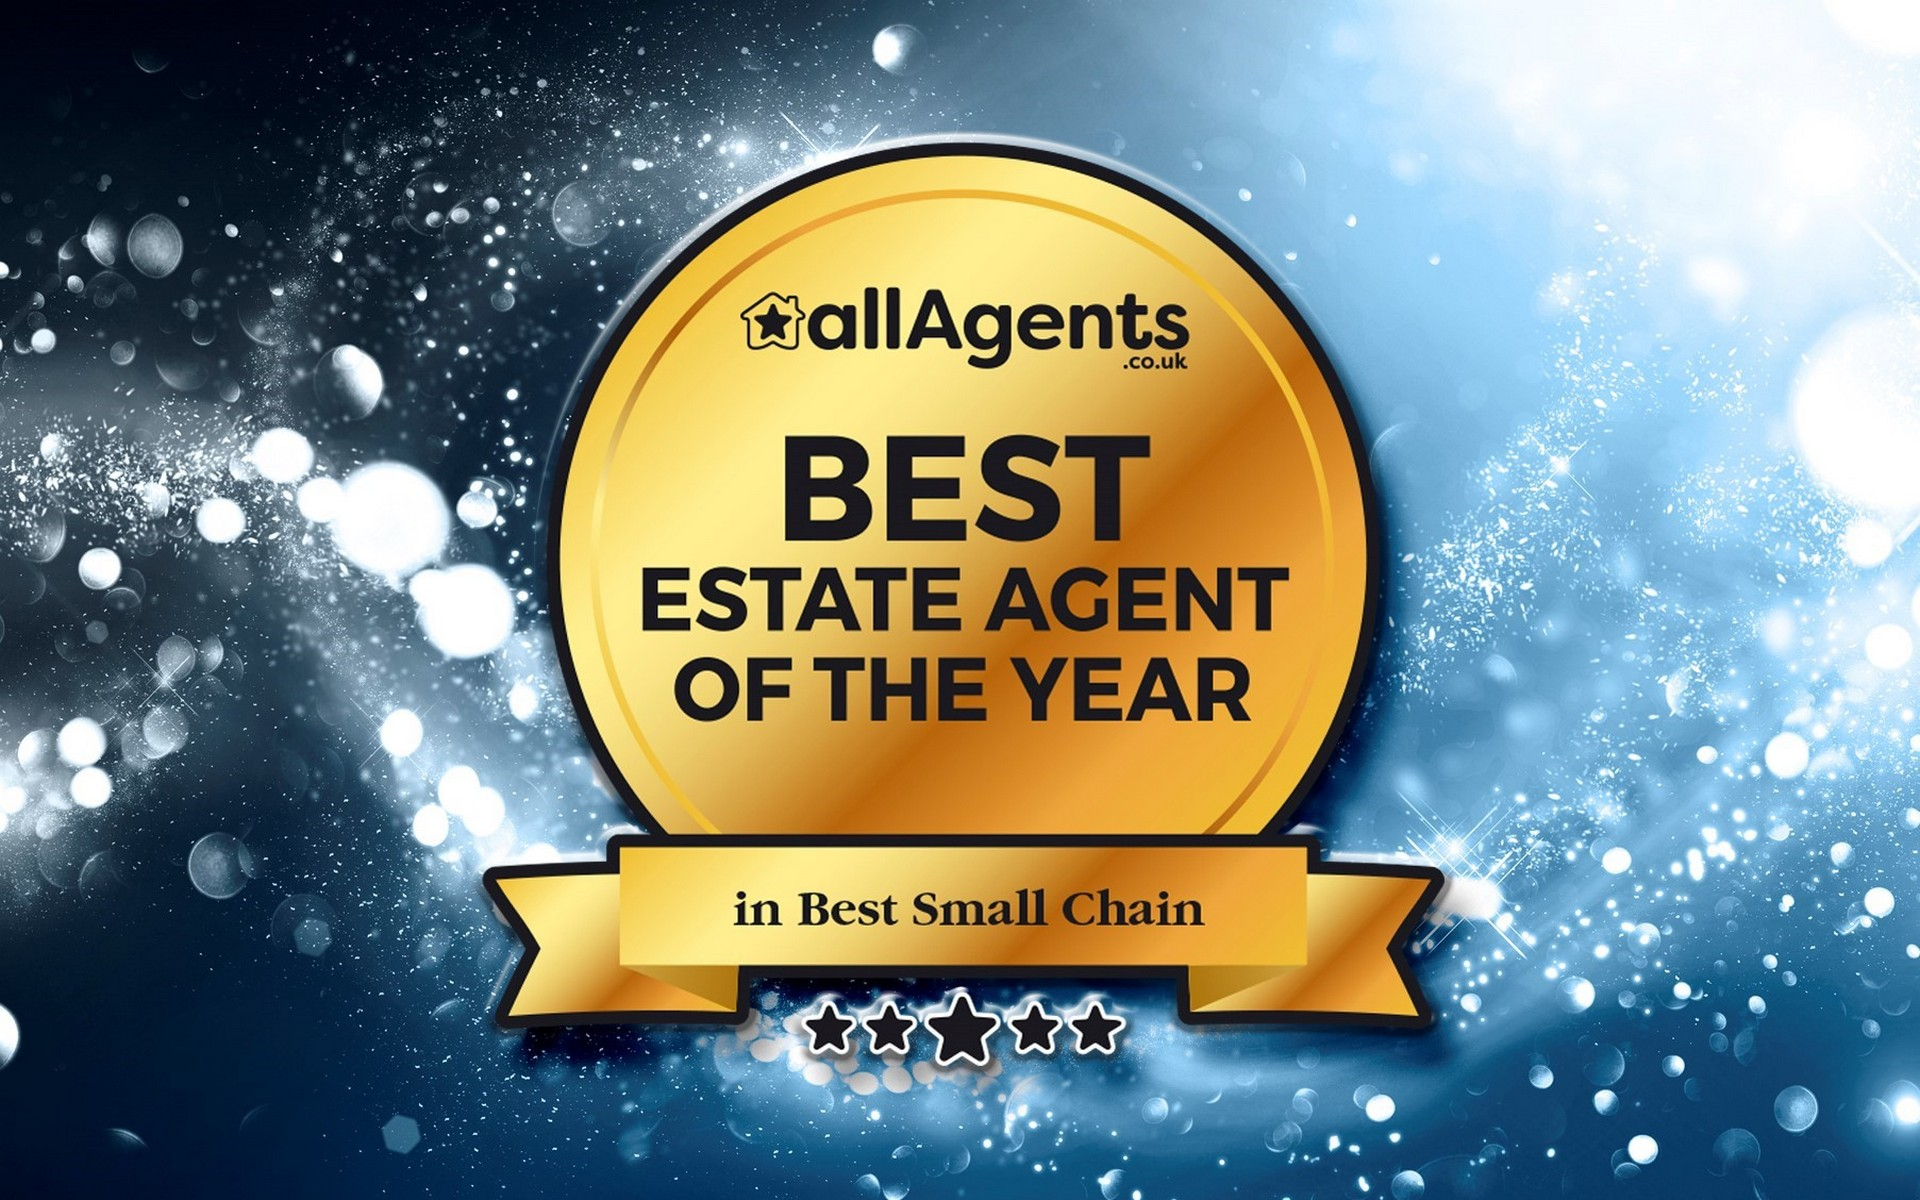 allAgents Award to Alex Neil for Best Estate Agents of the year